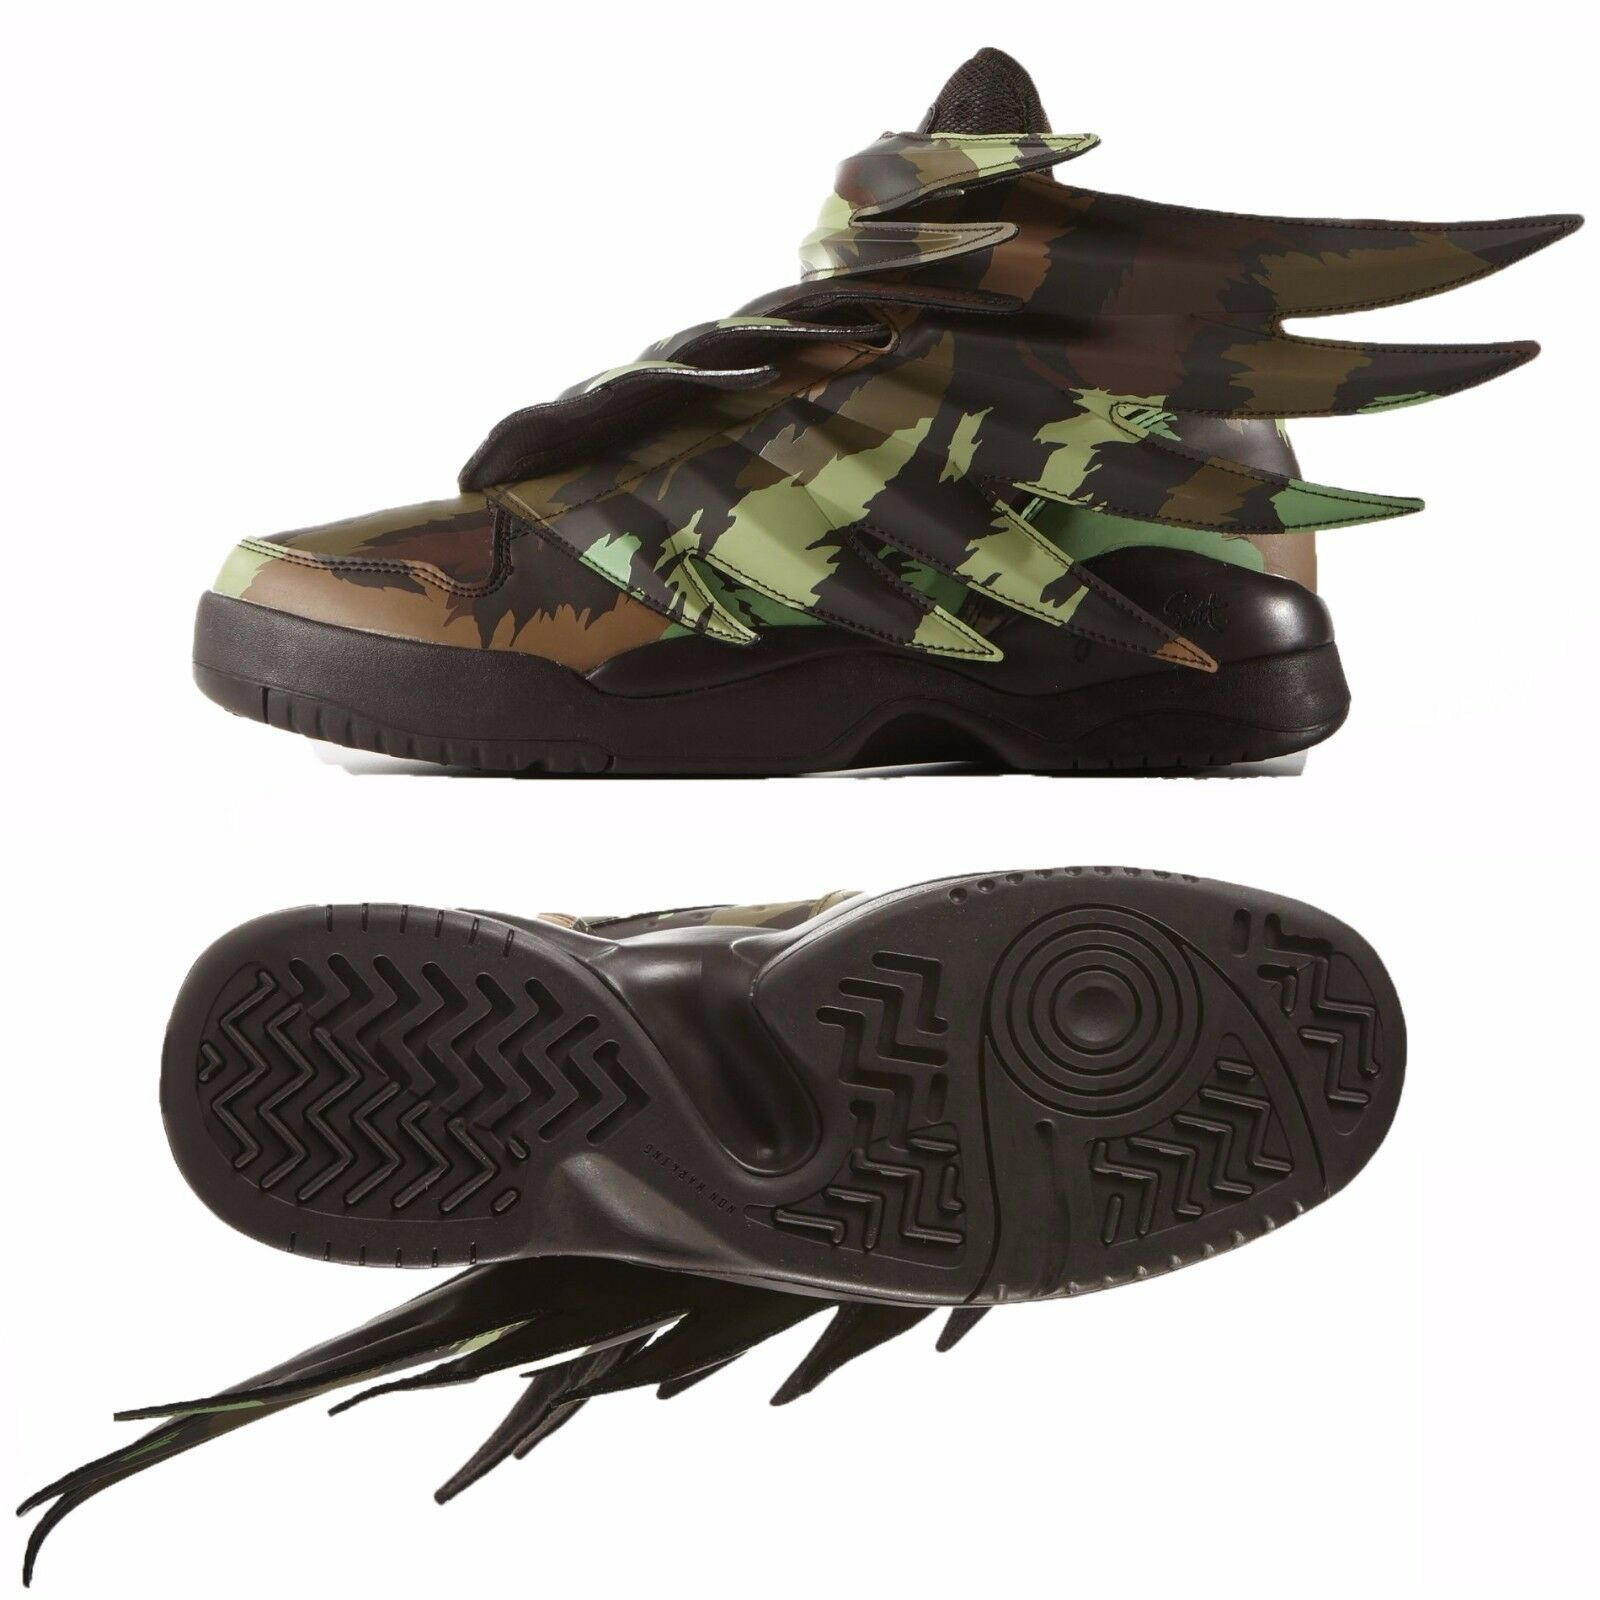 Adidas ObyO JS Jeremy Scott Wings 3.0 Print S77804 Sauvage Batman Camo Men schuhe